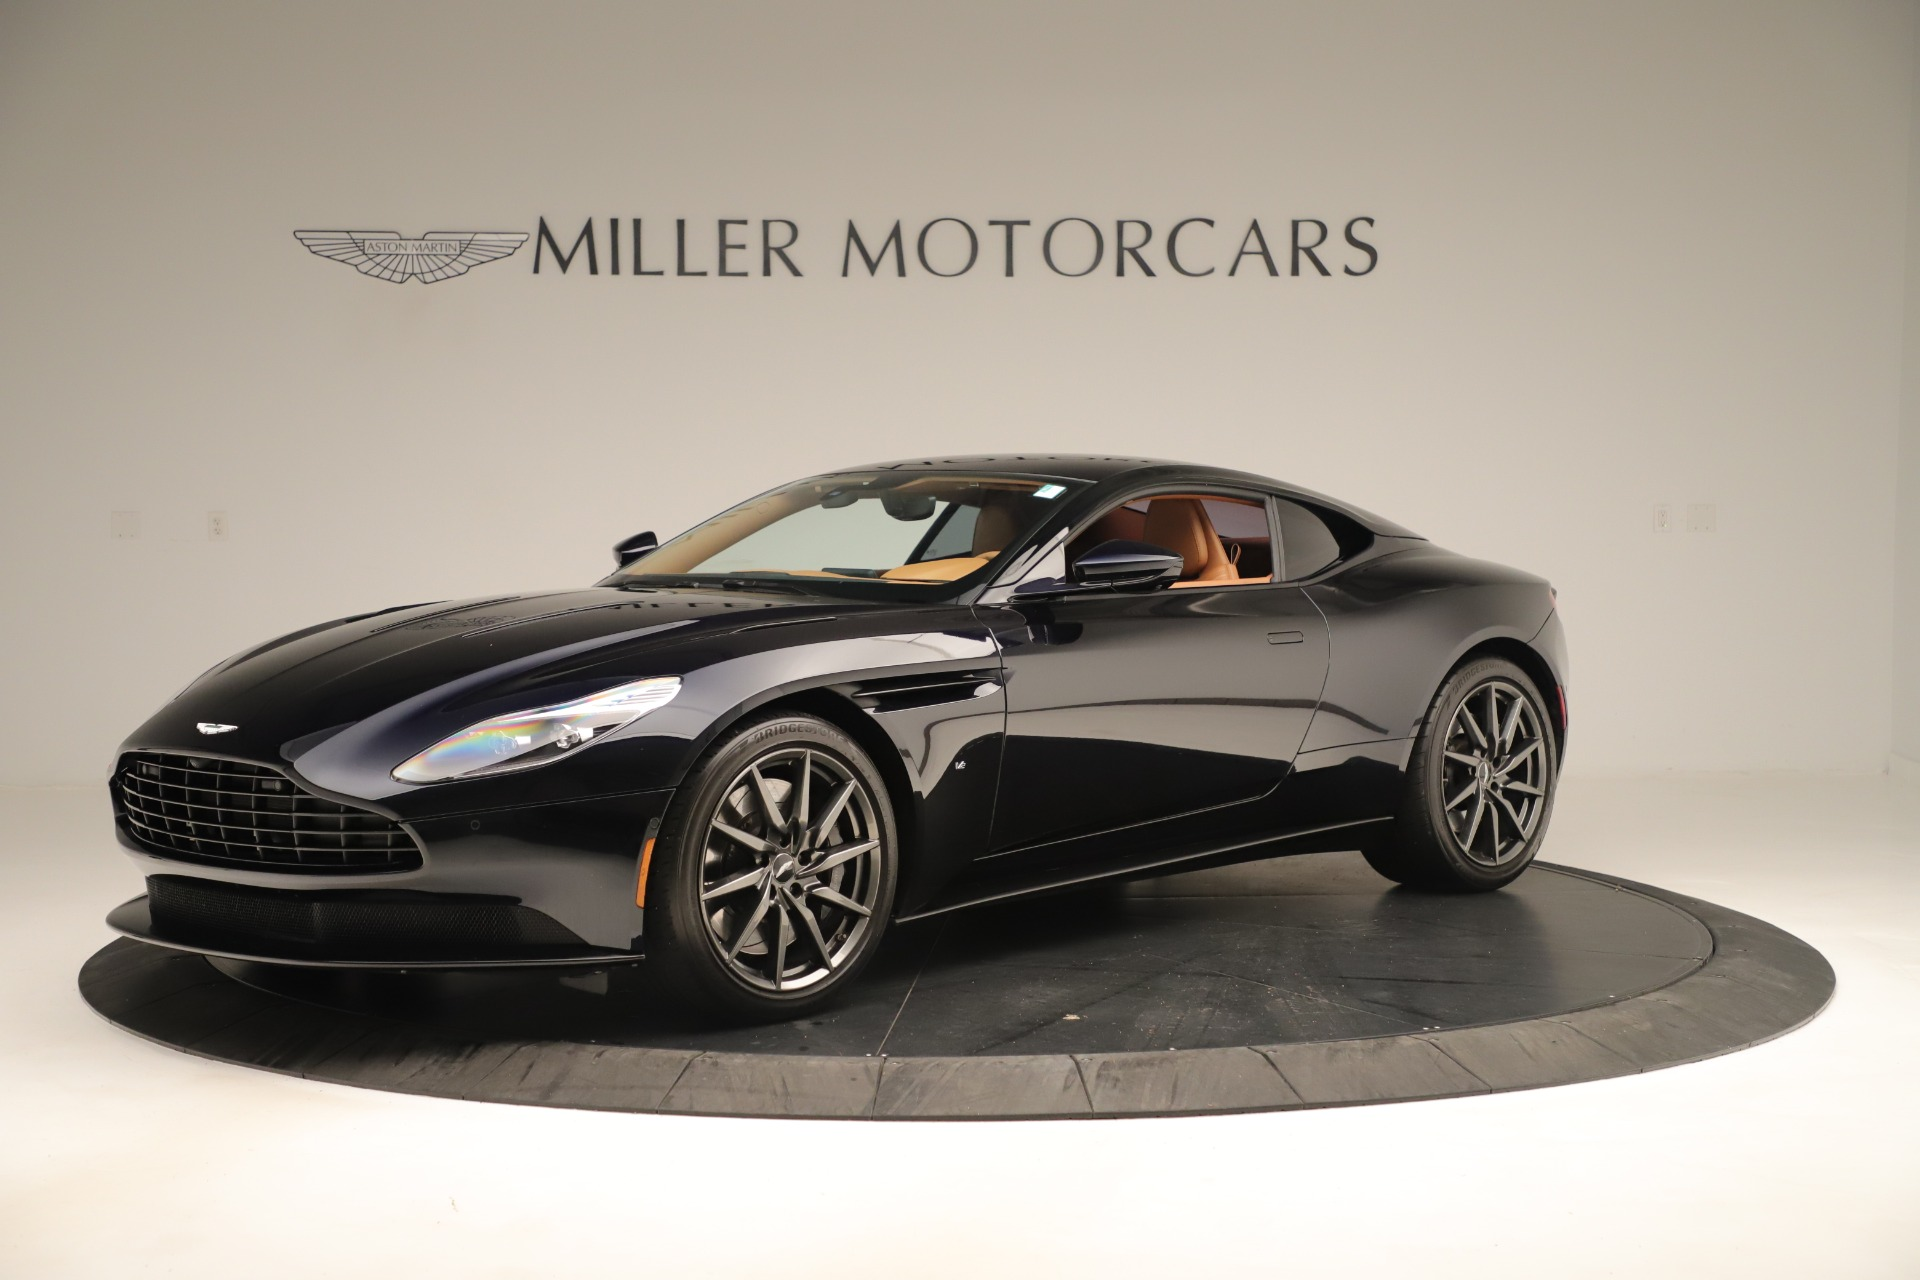 Used 2017 Aston Martin DB11 Launch Edition for sale Sold at Bugatti of Greenwich in Greenwich CT 06830 1